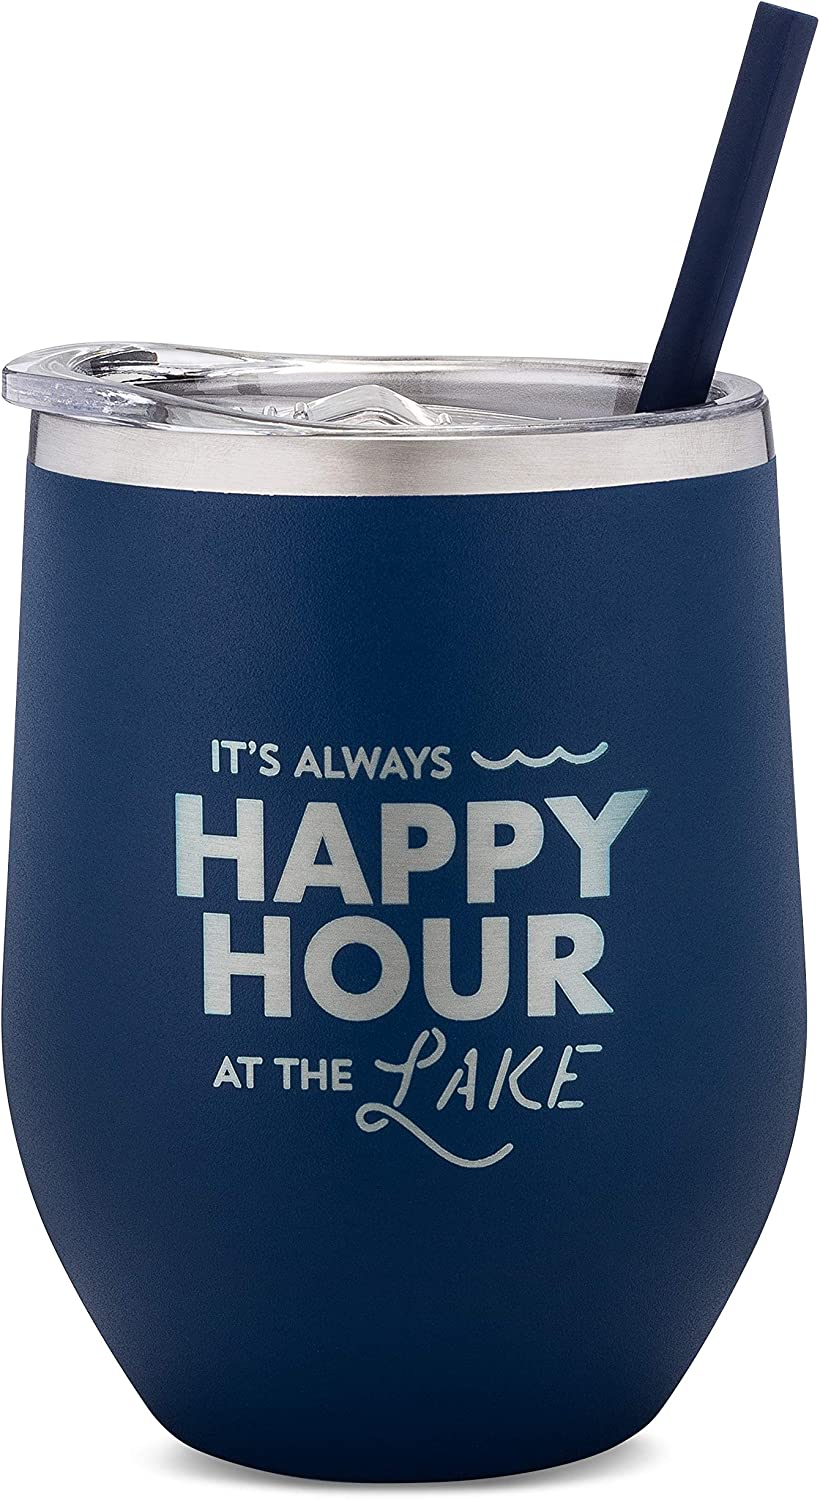 SassyCups Lake Wine Tumbler   It's Always Happy Hour At The Lake Engraved Stainless Steel Stemless Wine Glass with Lid and Straw   Lake Cup   Lake Tumbler   Lake Housewarming (12 Ounce, Navy)